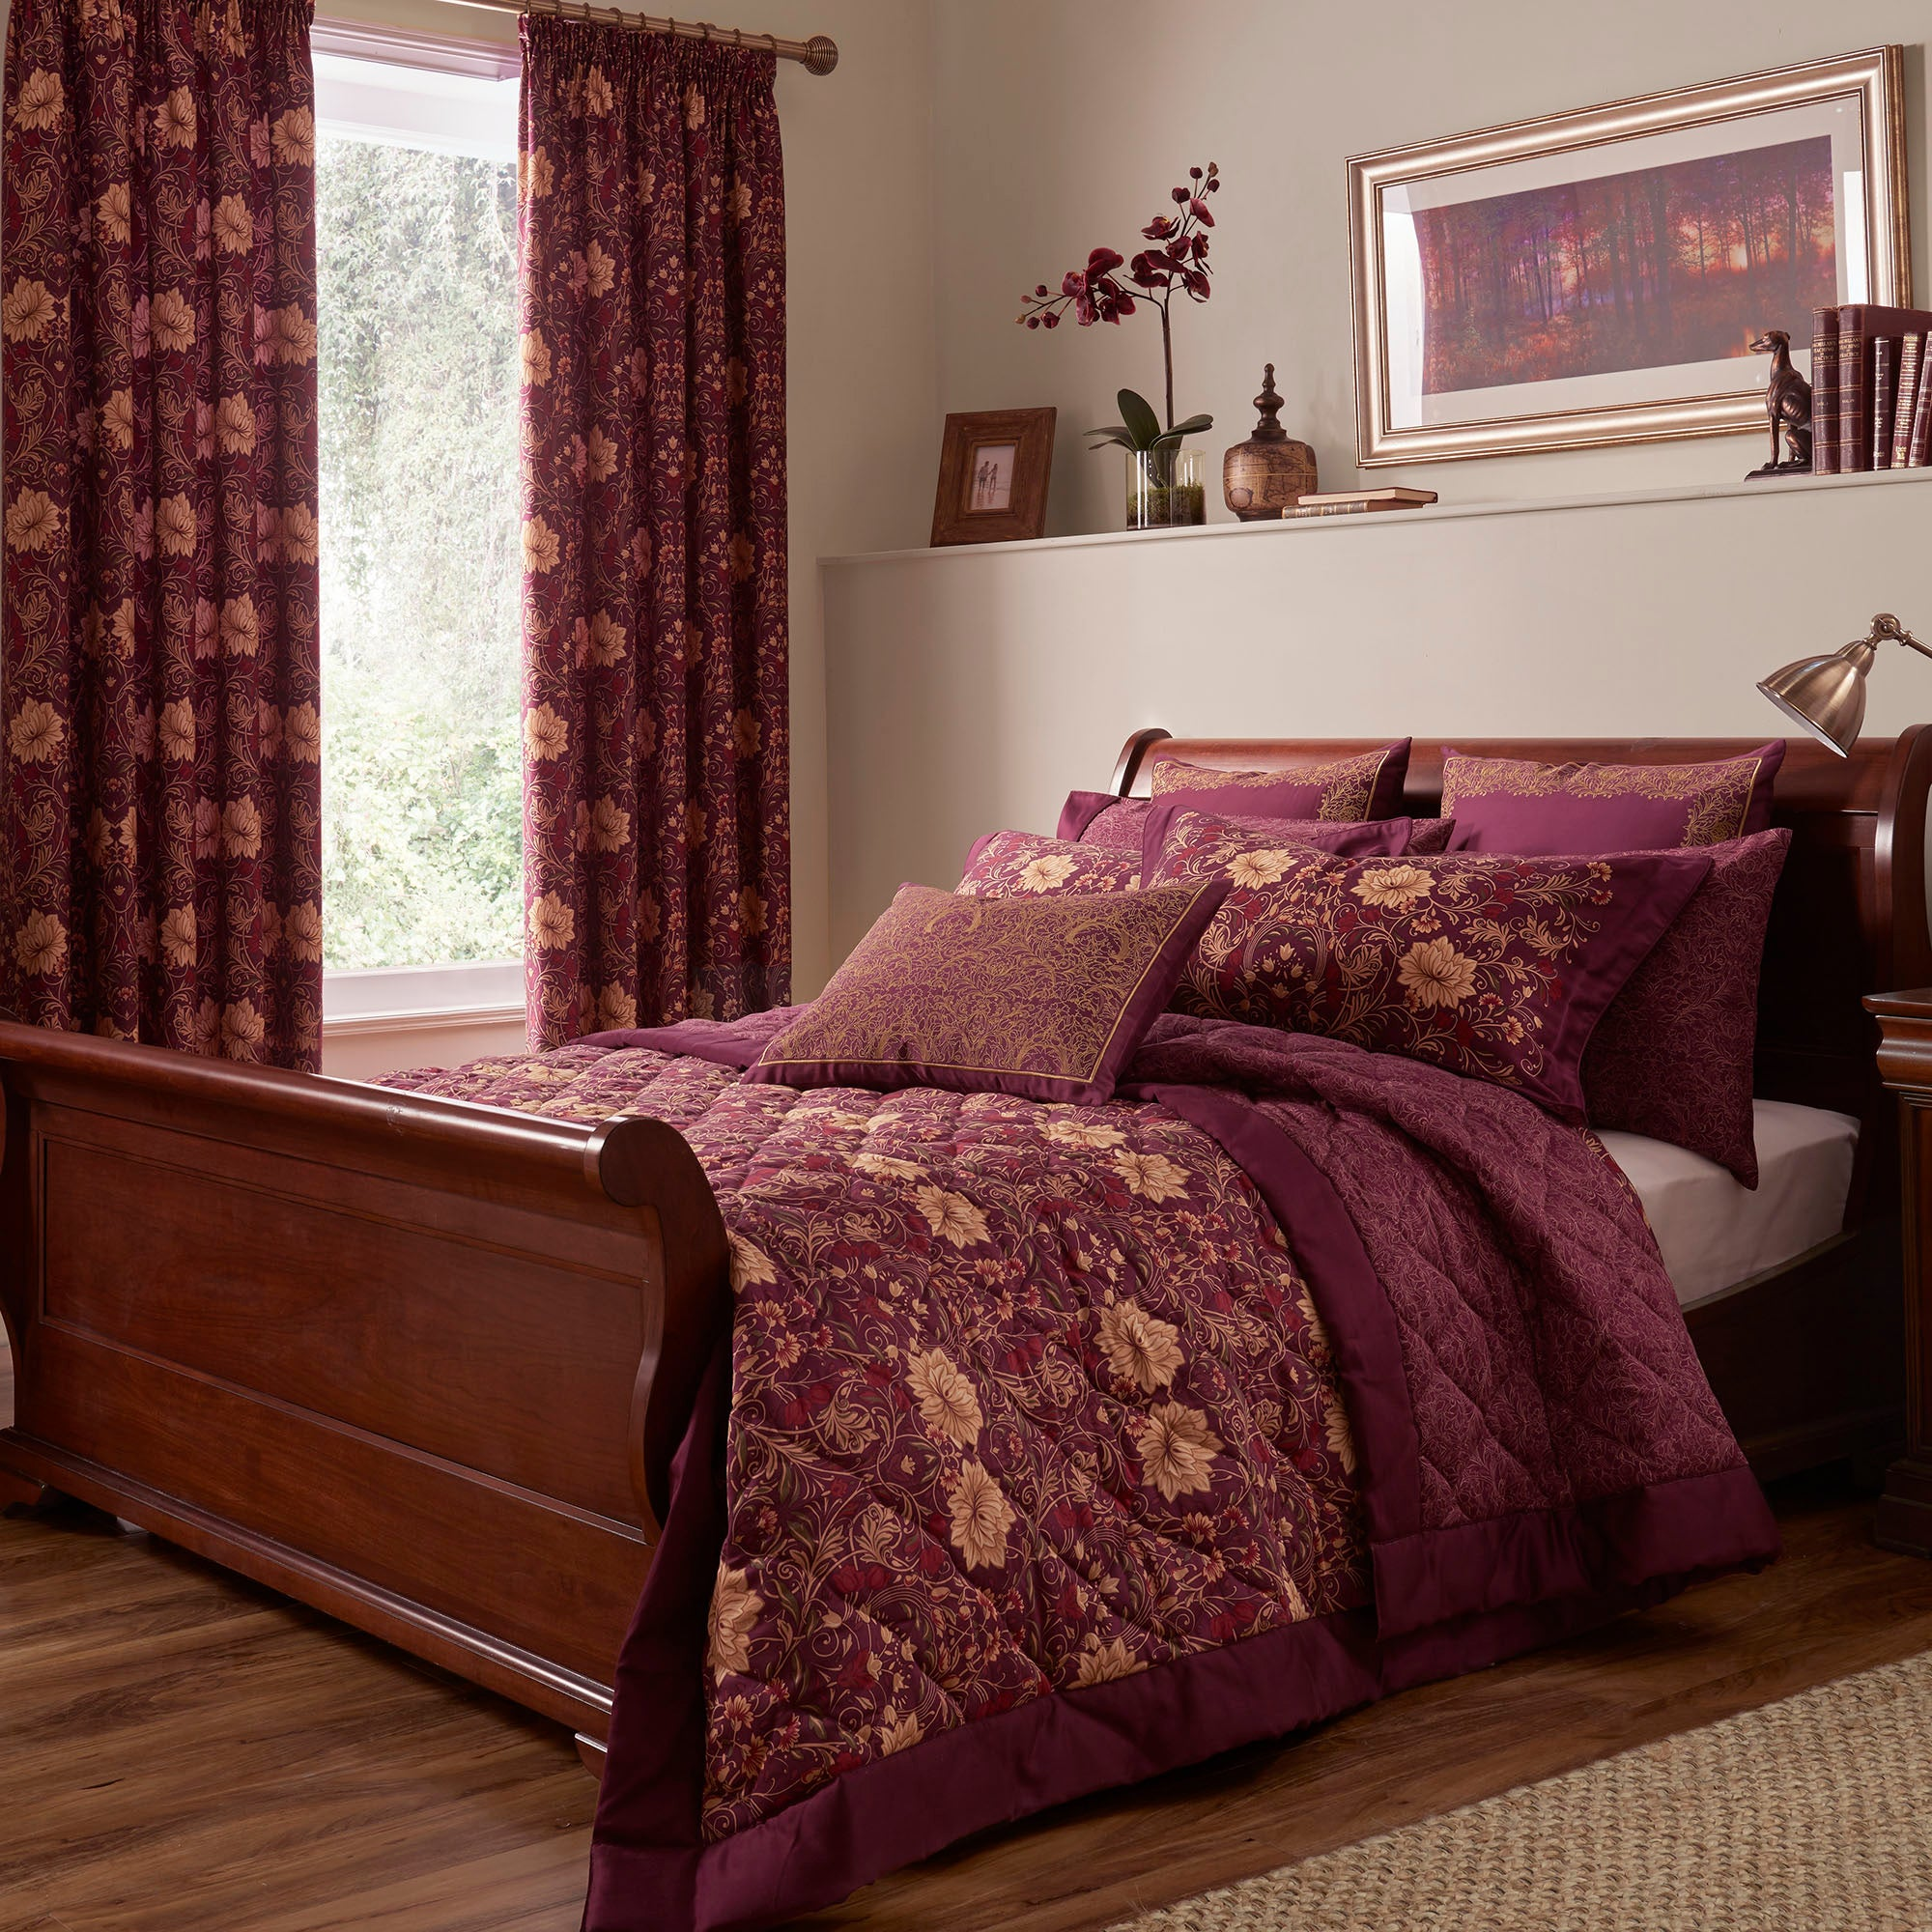 Dorma Victoria Plum Bed Linen Collection